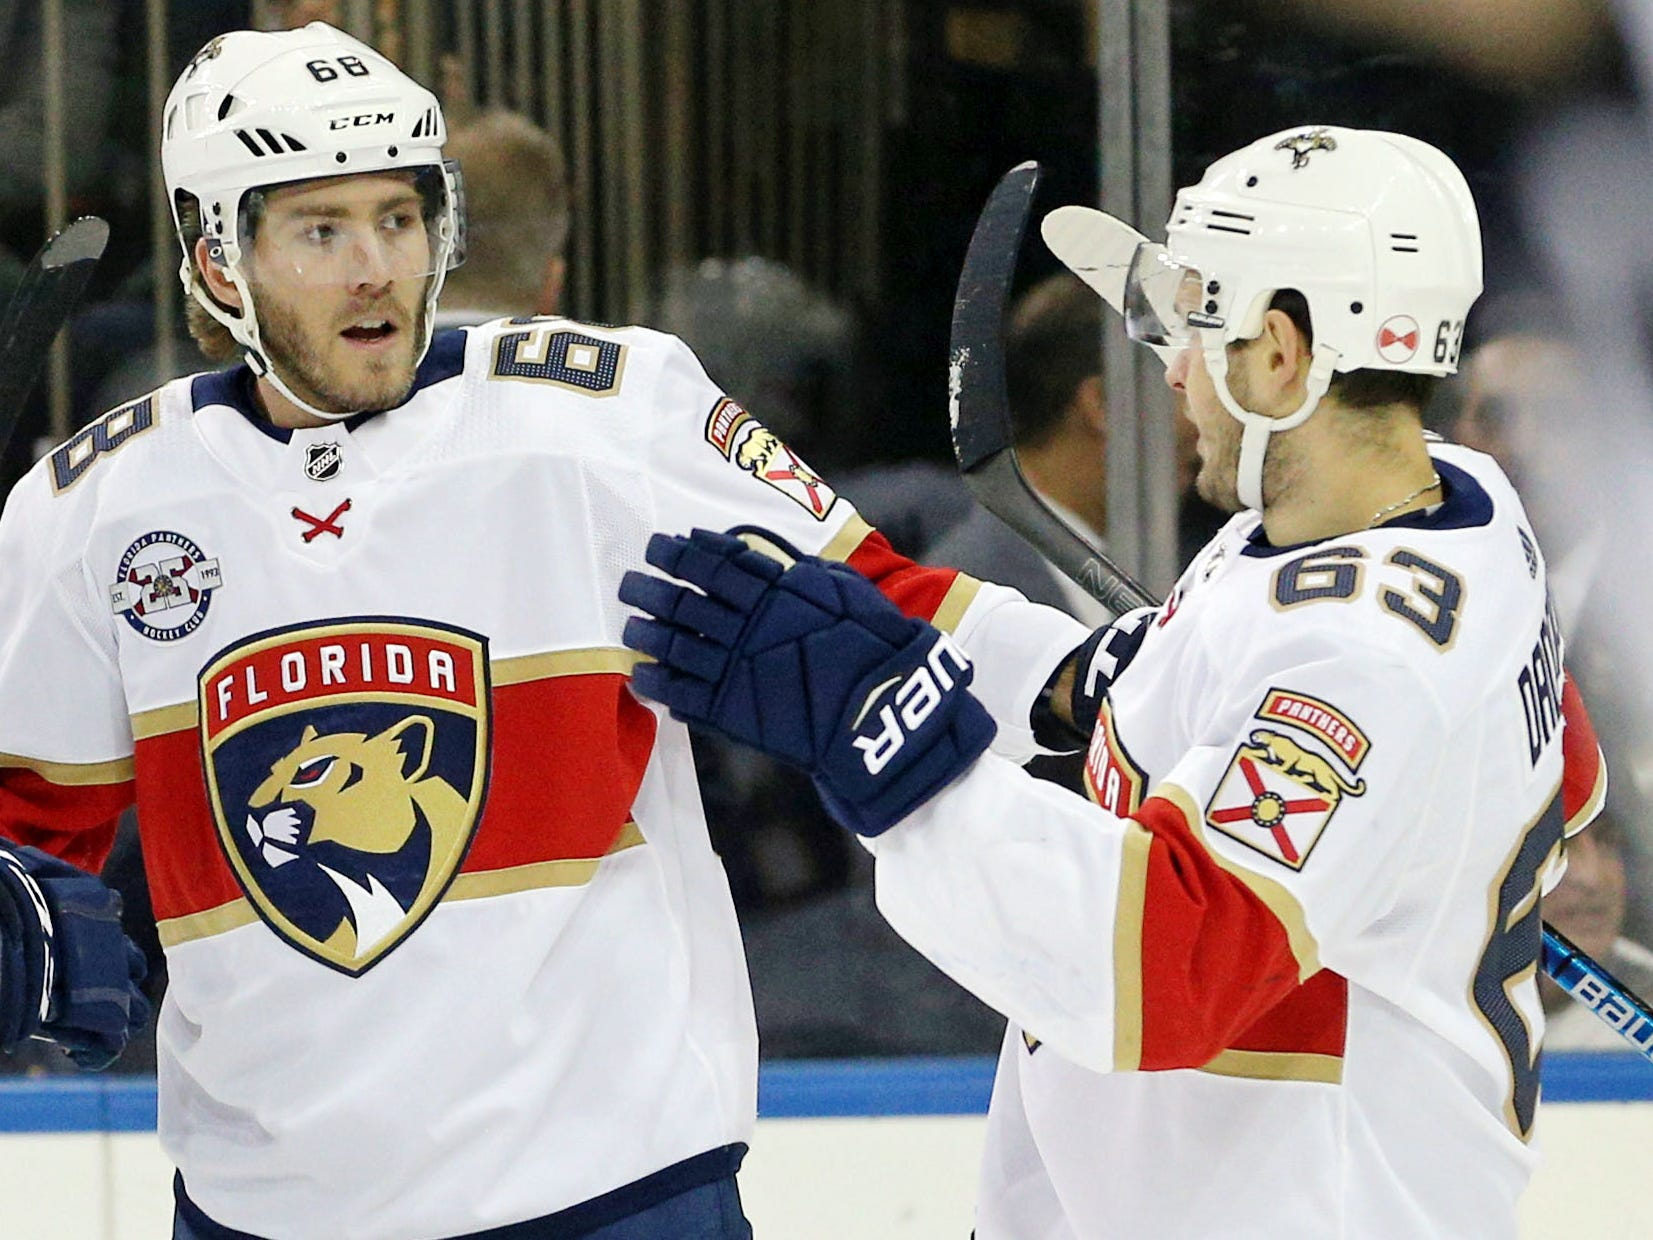 Nov. 17: Florida Panthers left wing Mike Hoffman (68) celebrates his goal, which extended his point streak to 15 games. The New York Rangers won 4-2.